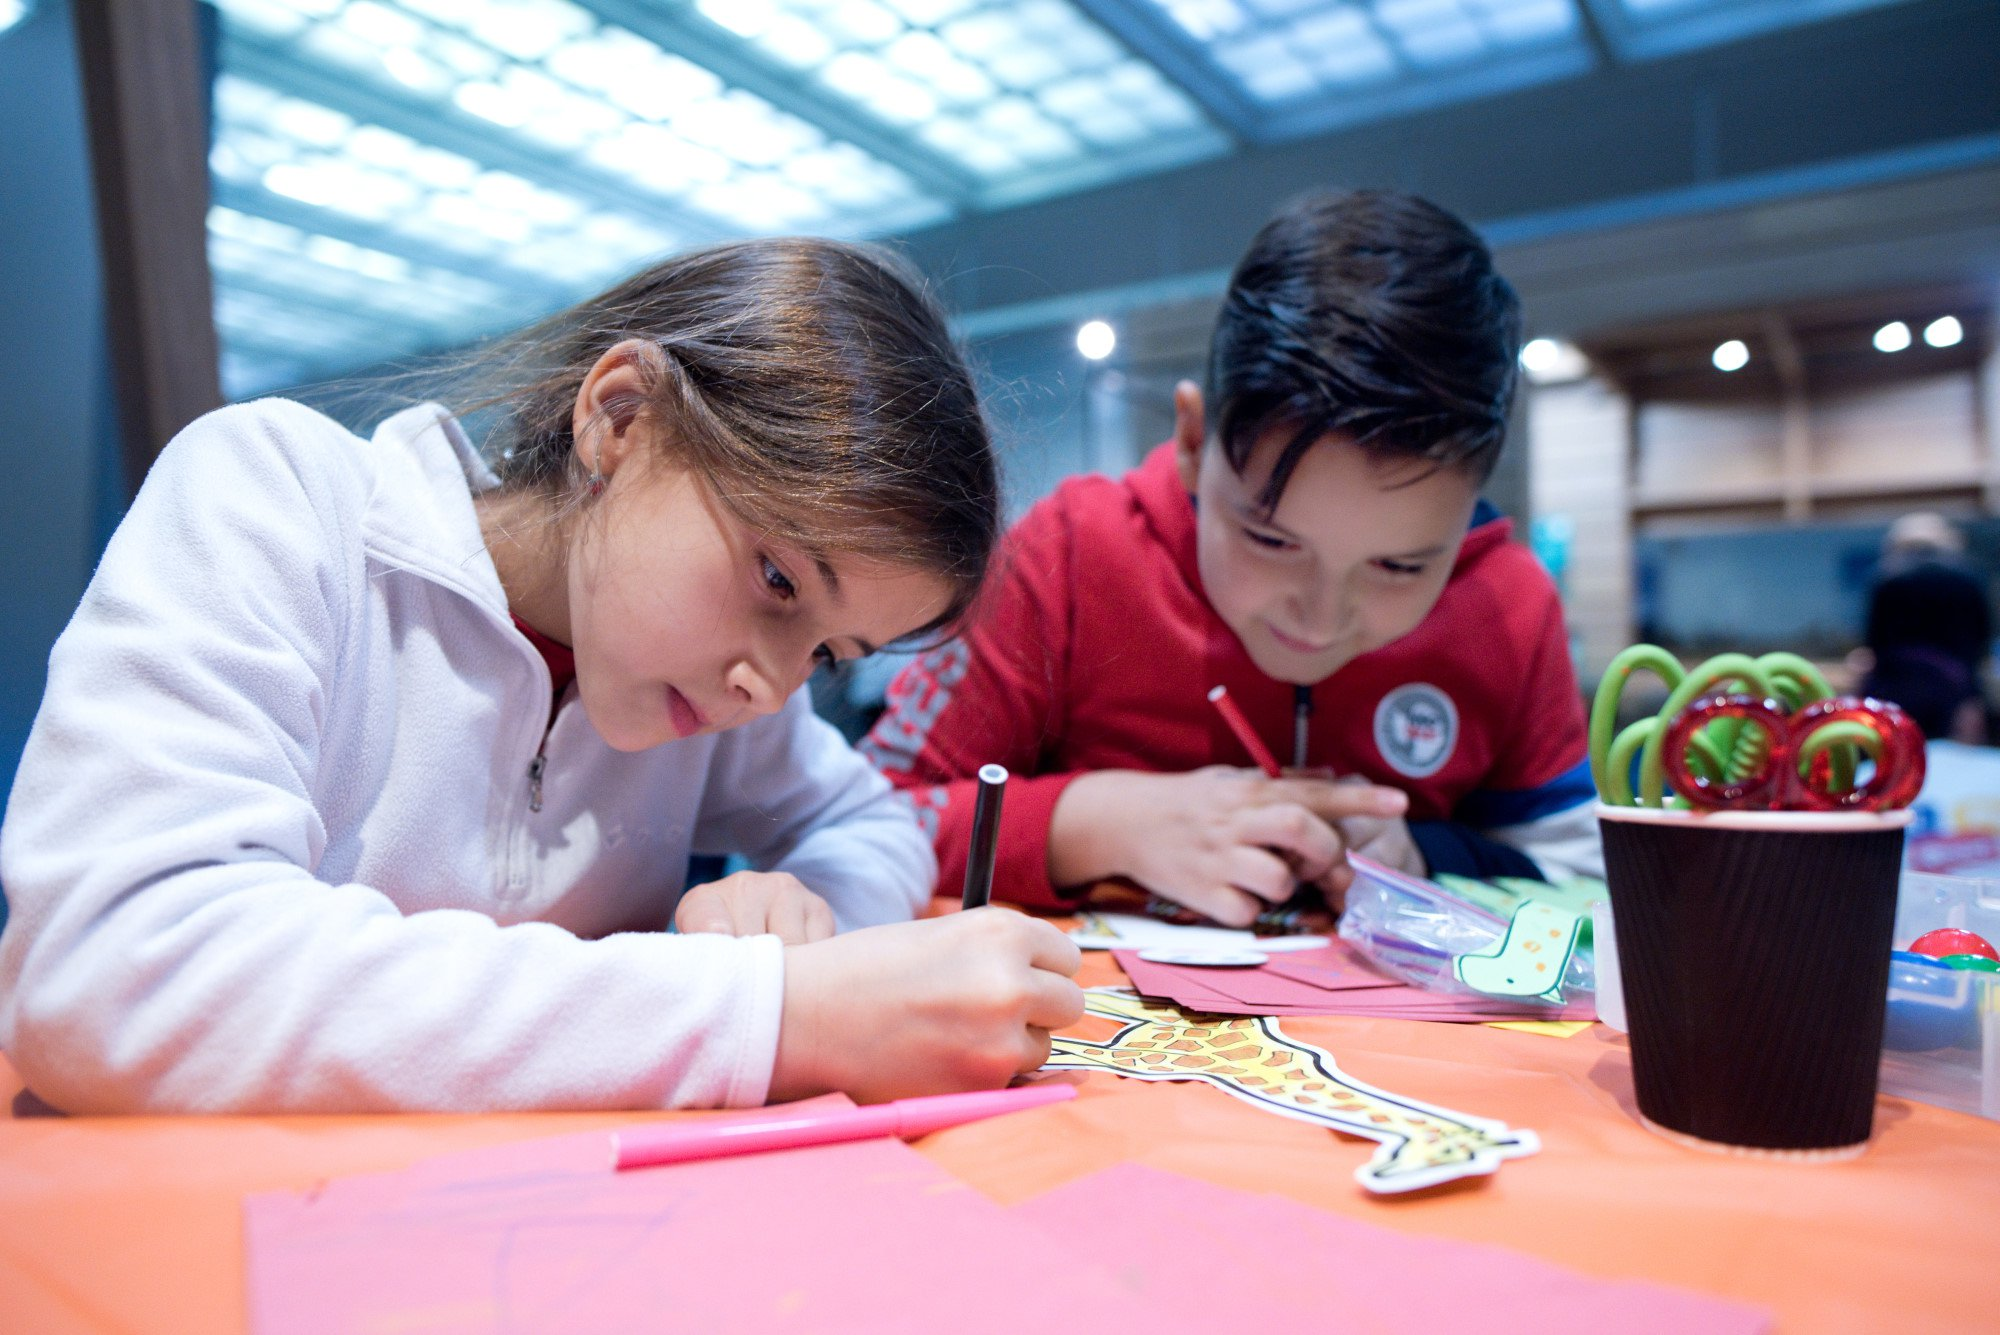 A young girl and young boy enjoy a colouring activity at the Great North Museum